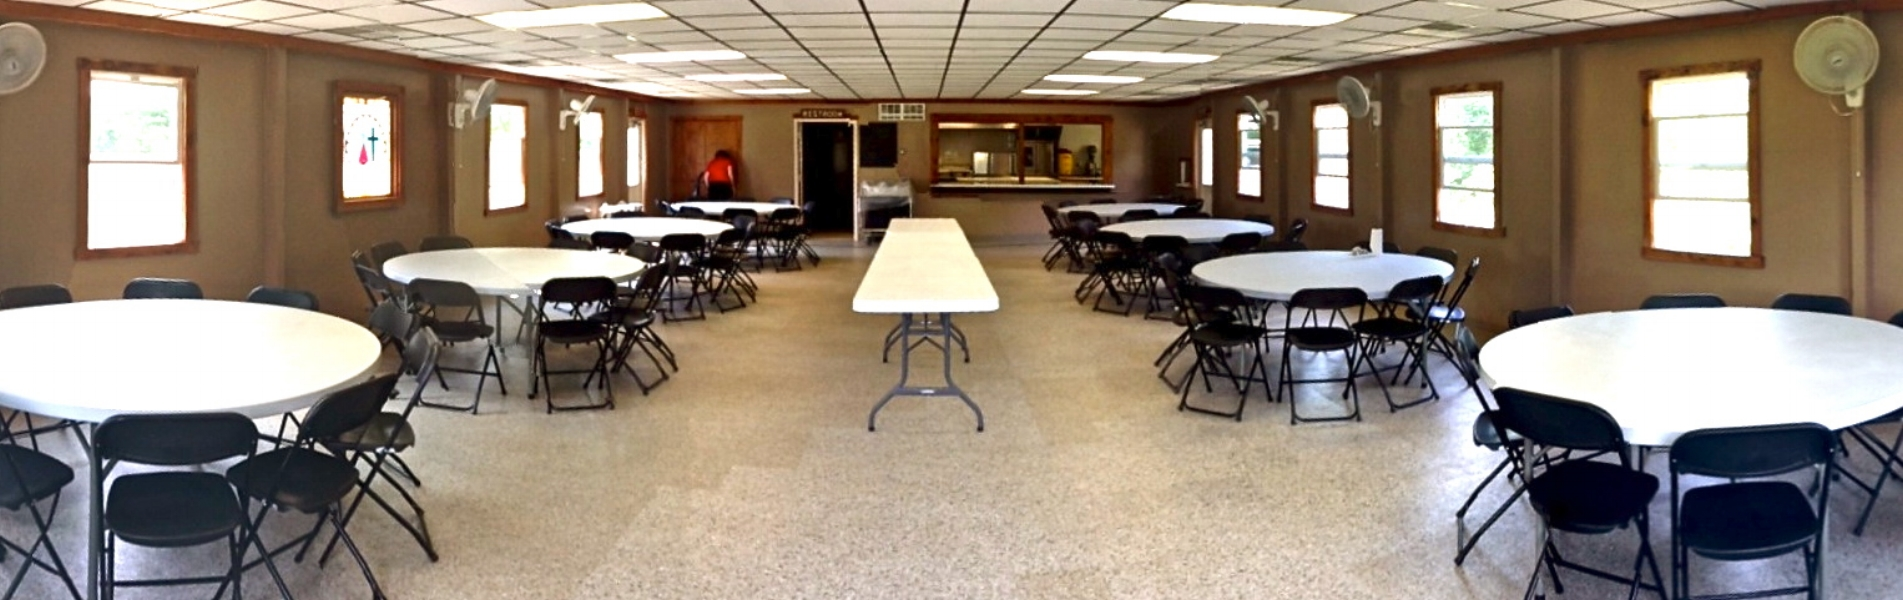 Our Dining Hall can host about 100 people, with up to 10 round tables, and 100 chairs available.